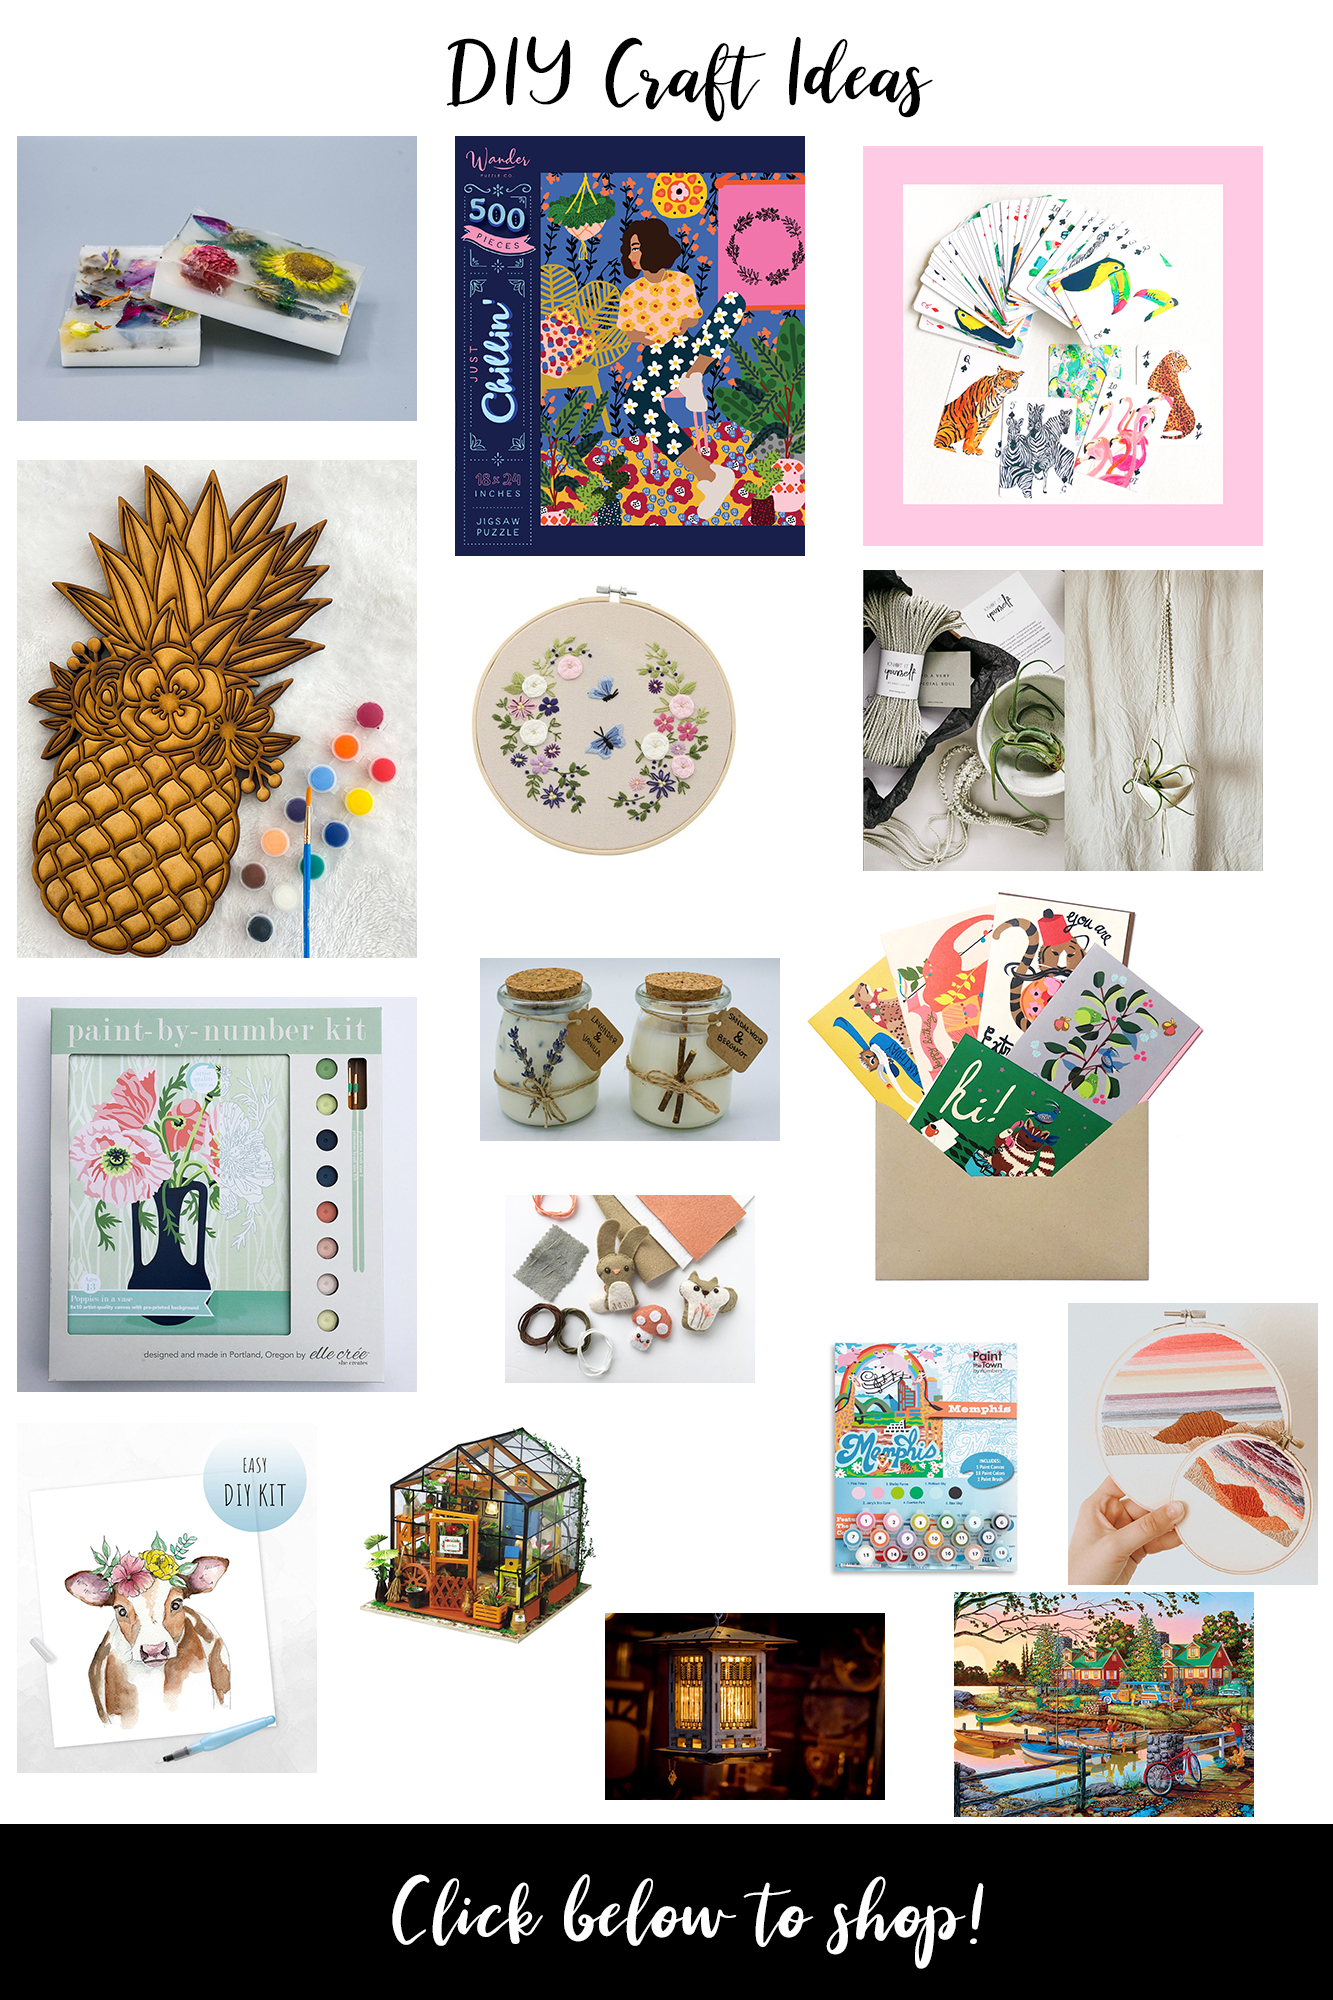 DIY Crafts to do while Self Distancing - Easy and affordable home activities that include quick shipping, USA made items while in quarantine.